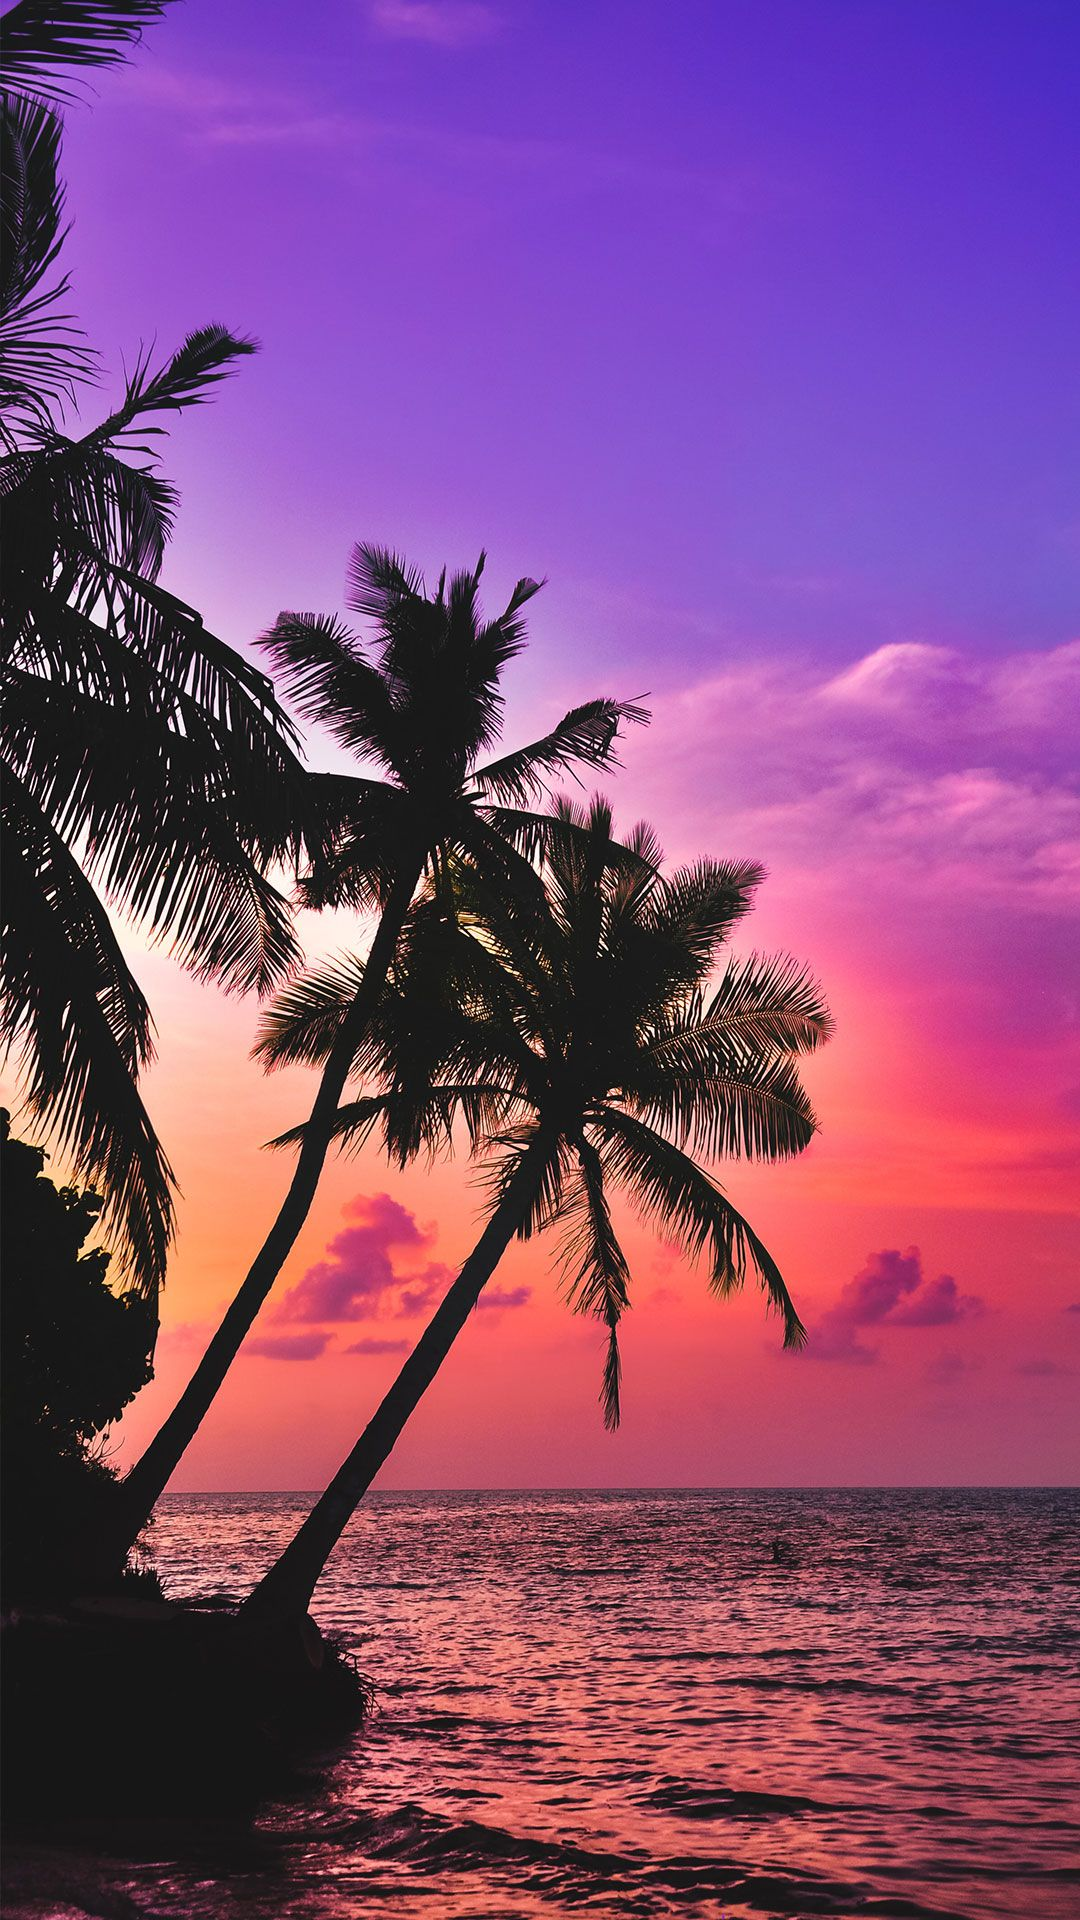 116 Free Beach Wallpapers For Your Phone Desktop Sunset Wallpaper Beach Wallpaper Palm Tree Sunset